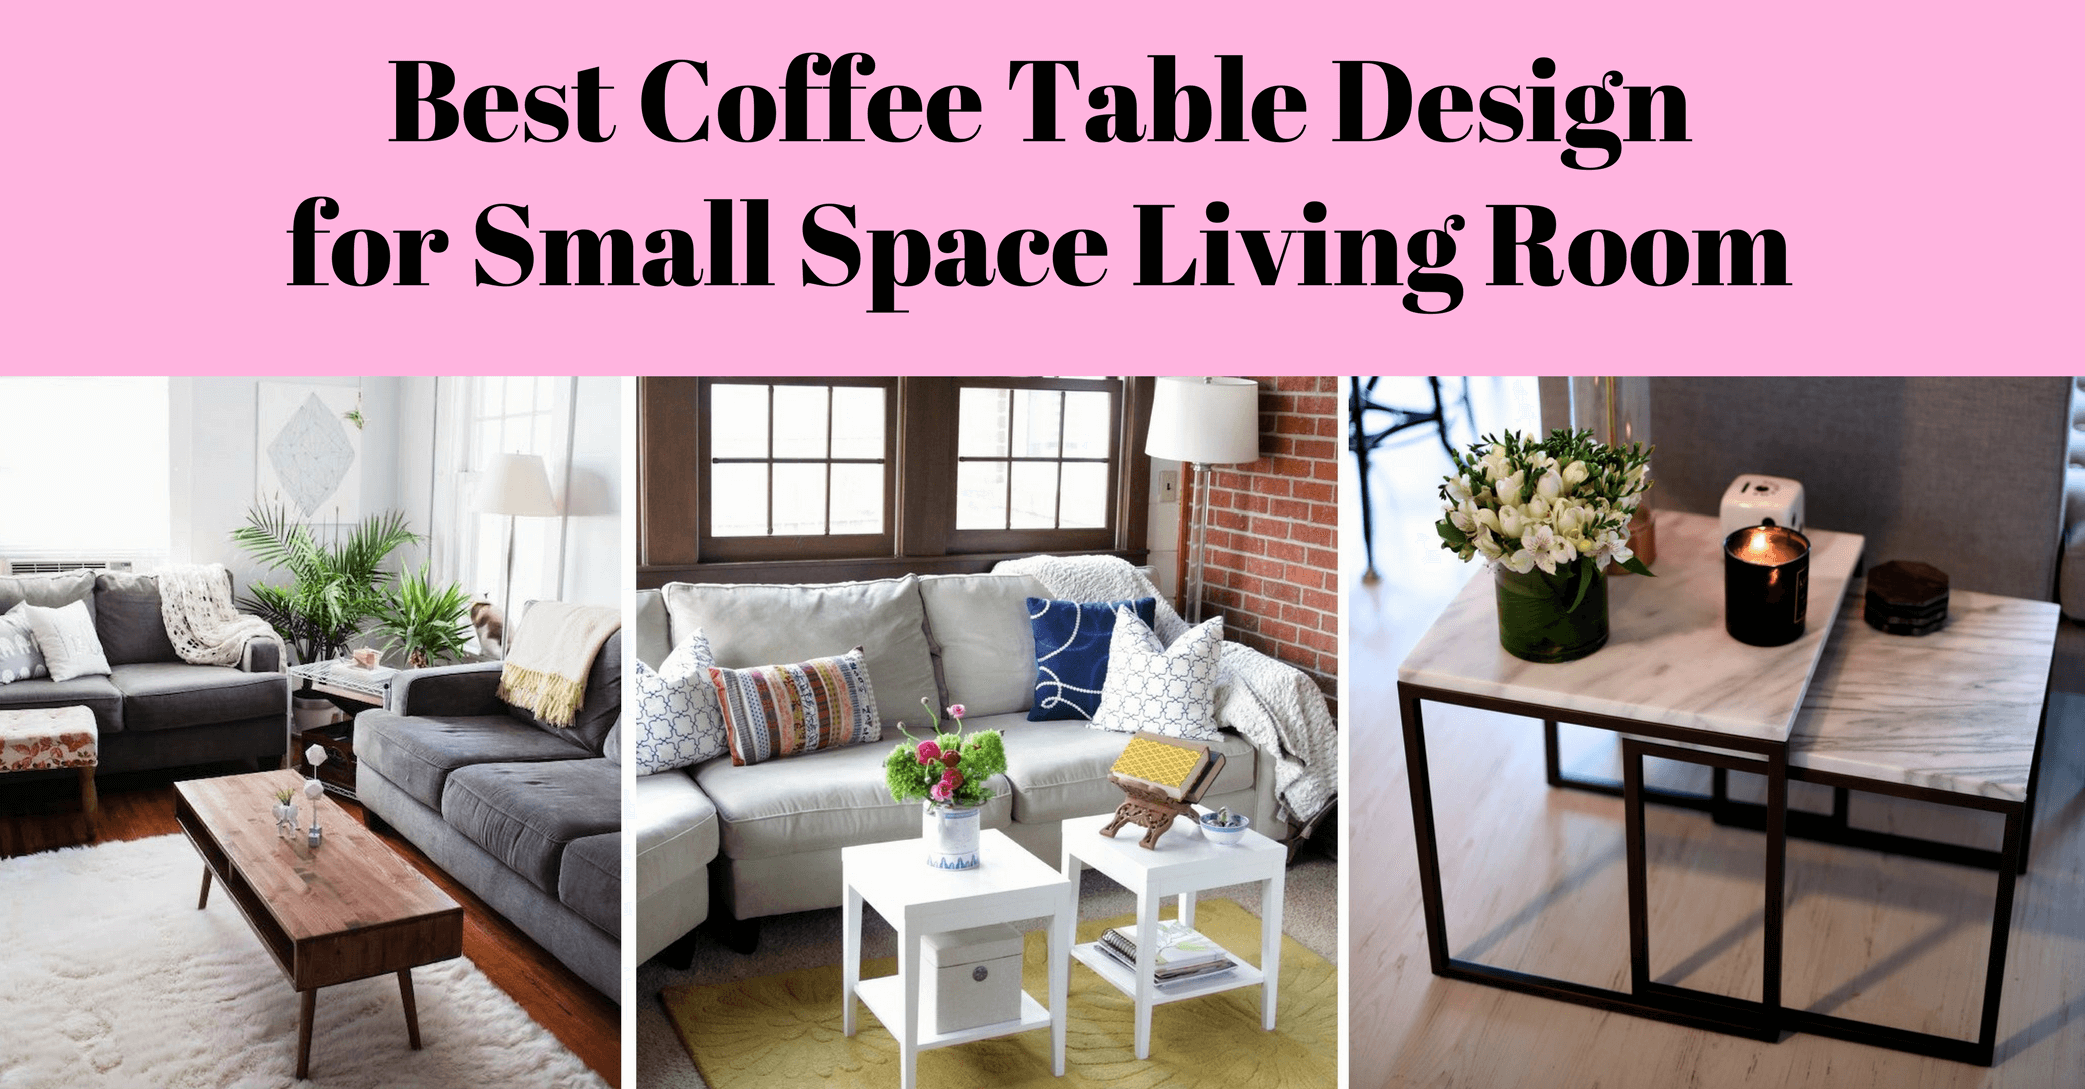 Best Coffee Table Design For Small Space Living Room